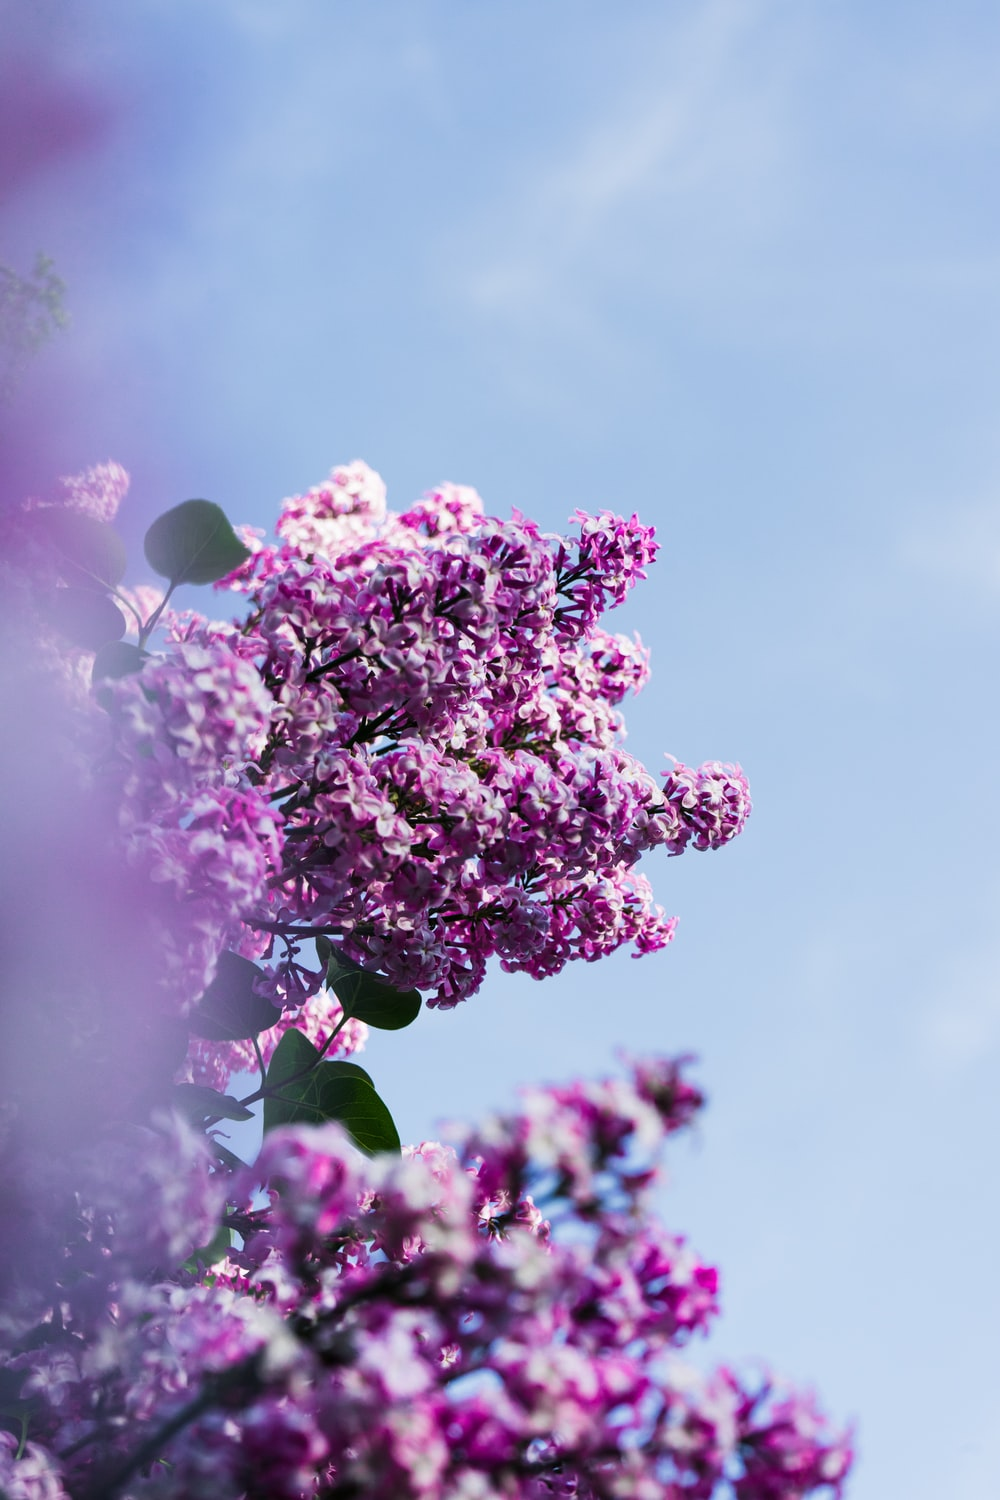 purple flowers under cloudy sky during daytime